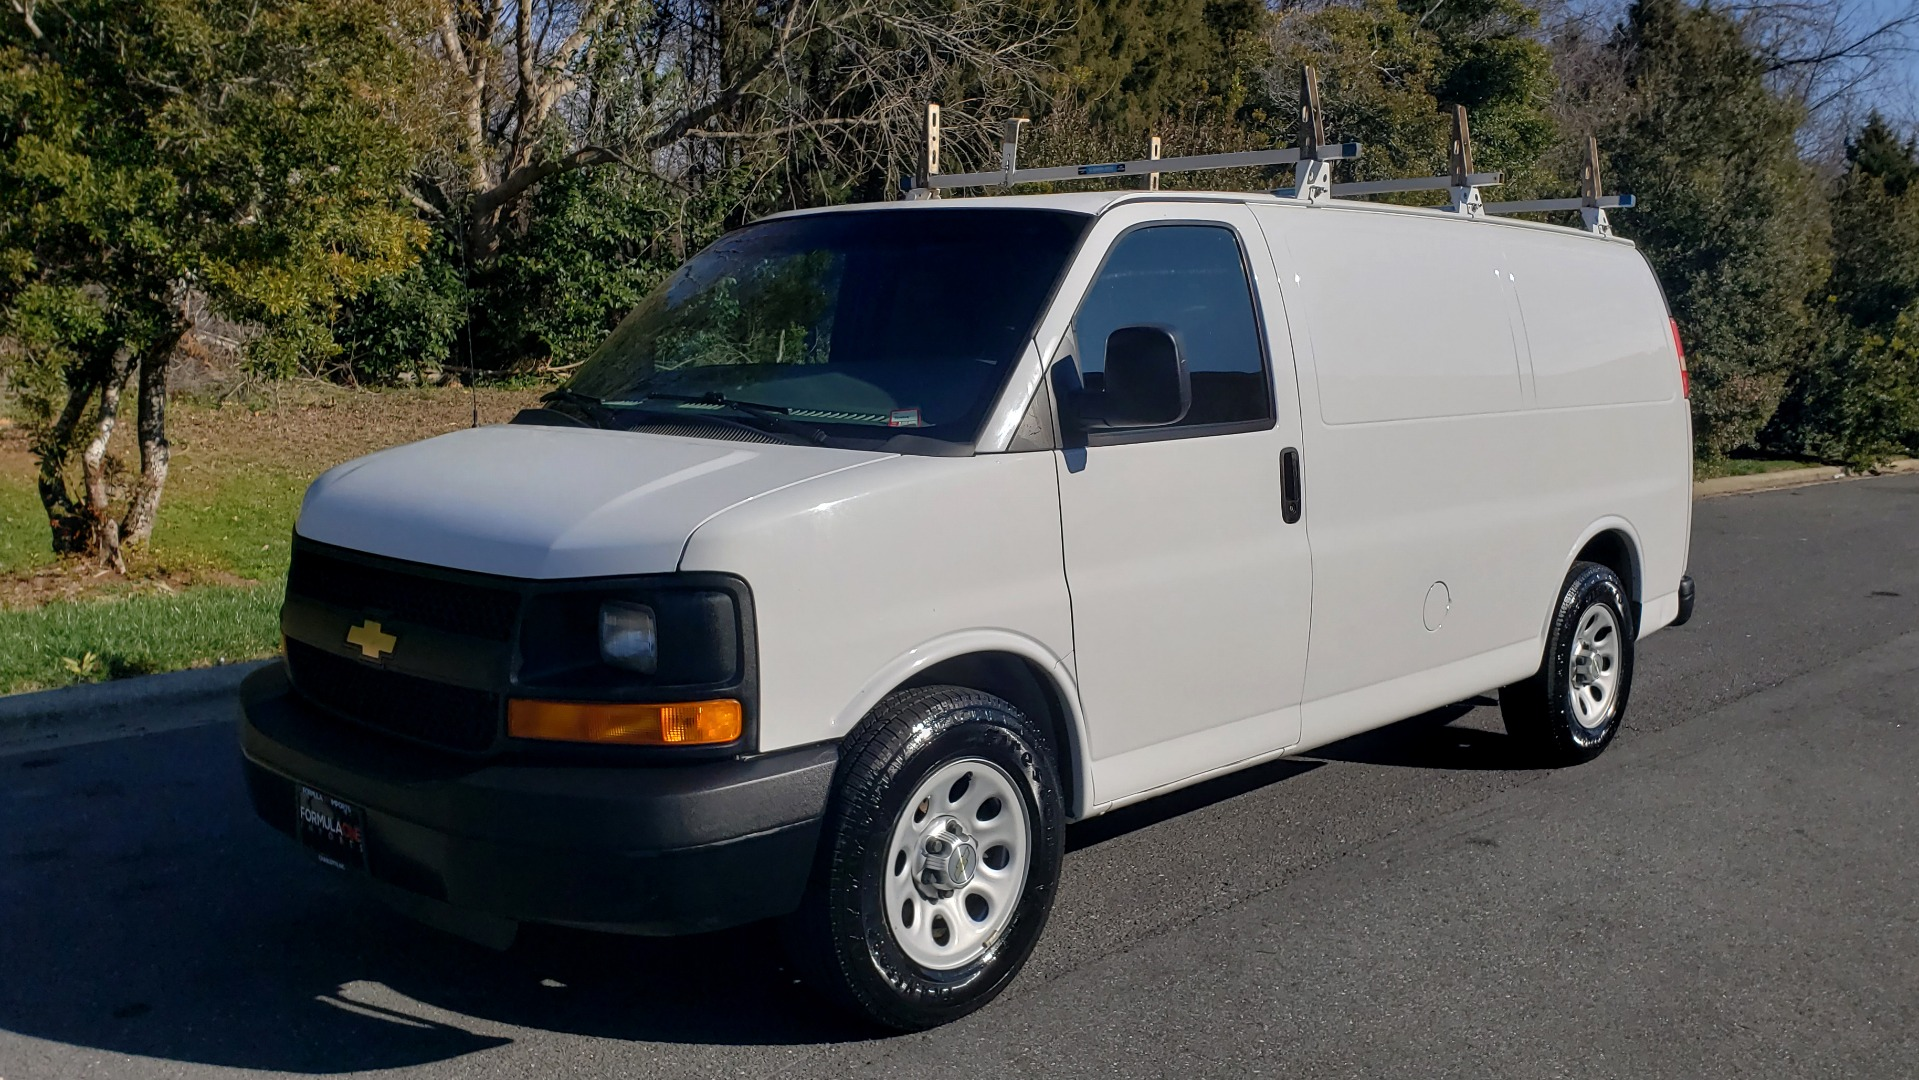 Used 2012 Chevrolet EXPRESS WORK VAN 1500 / 135 WB / 4.3L V6 / 4-SPD AUTO / ROOF RACK for sale $11,600 at Formula Imports in Charlotte NC 28227 1